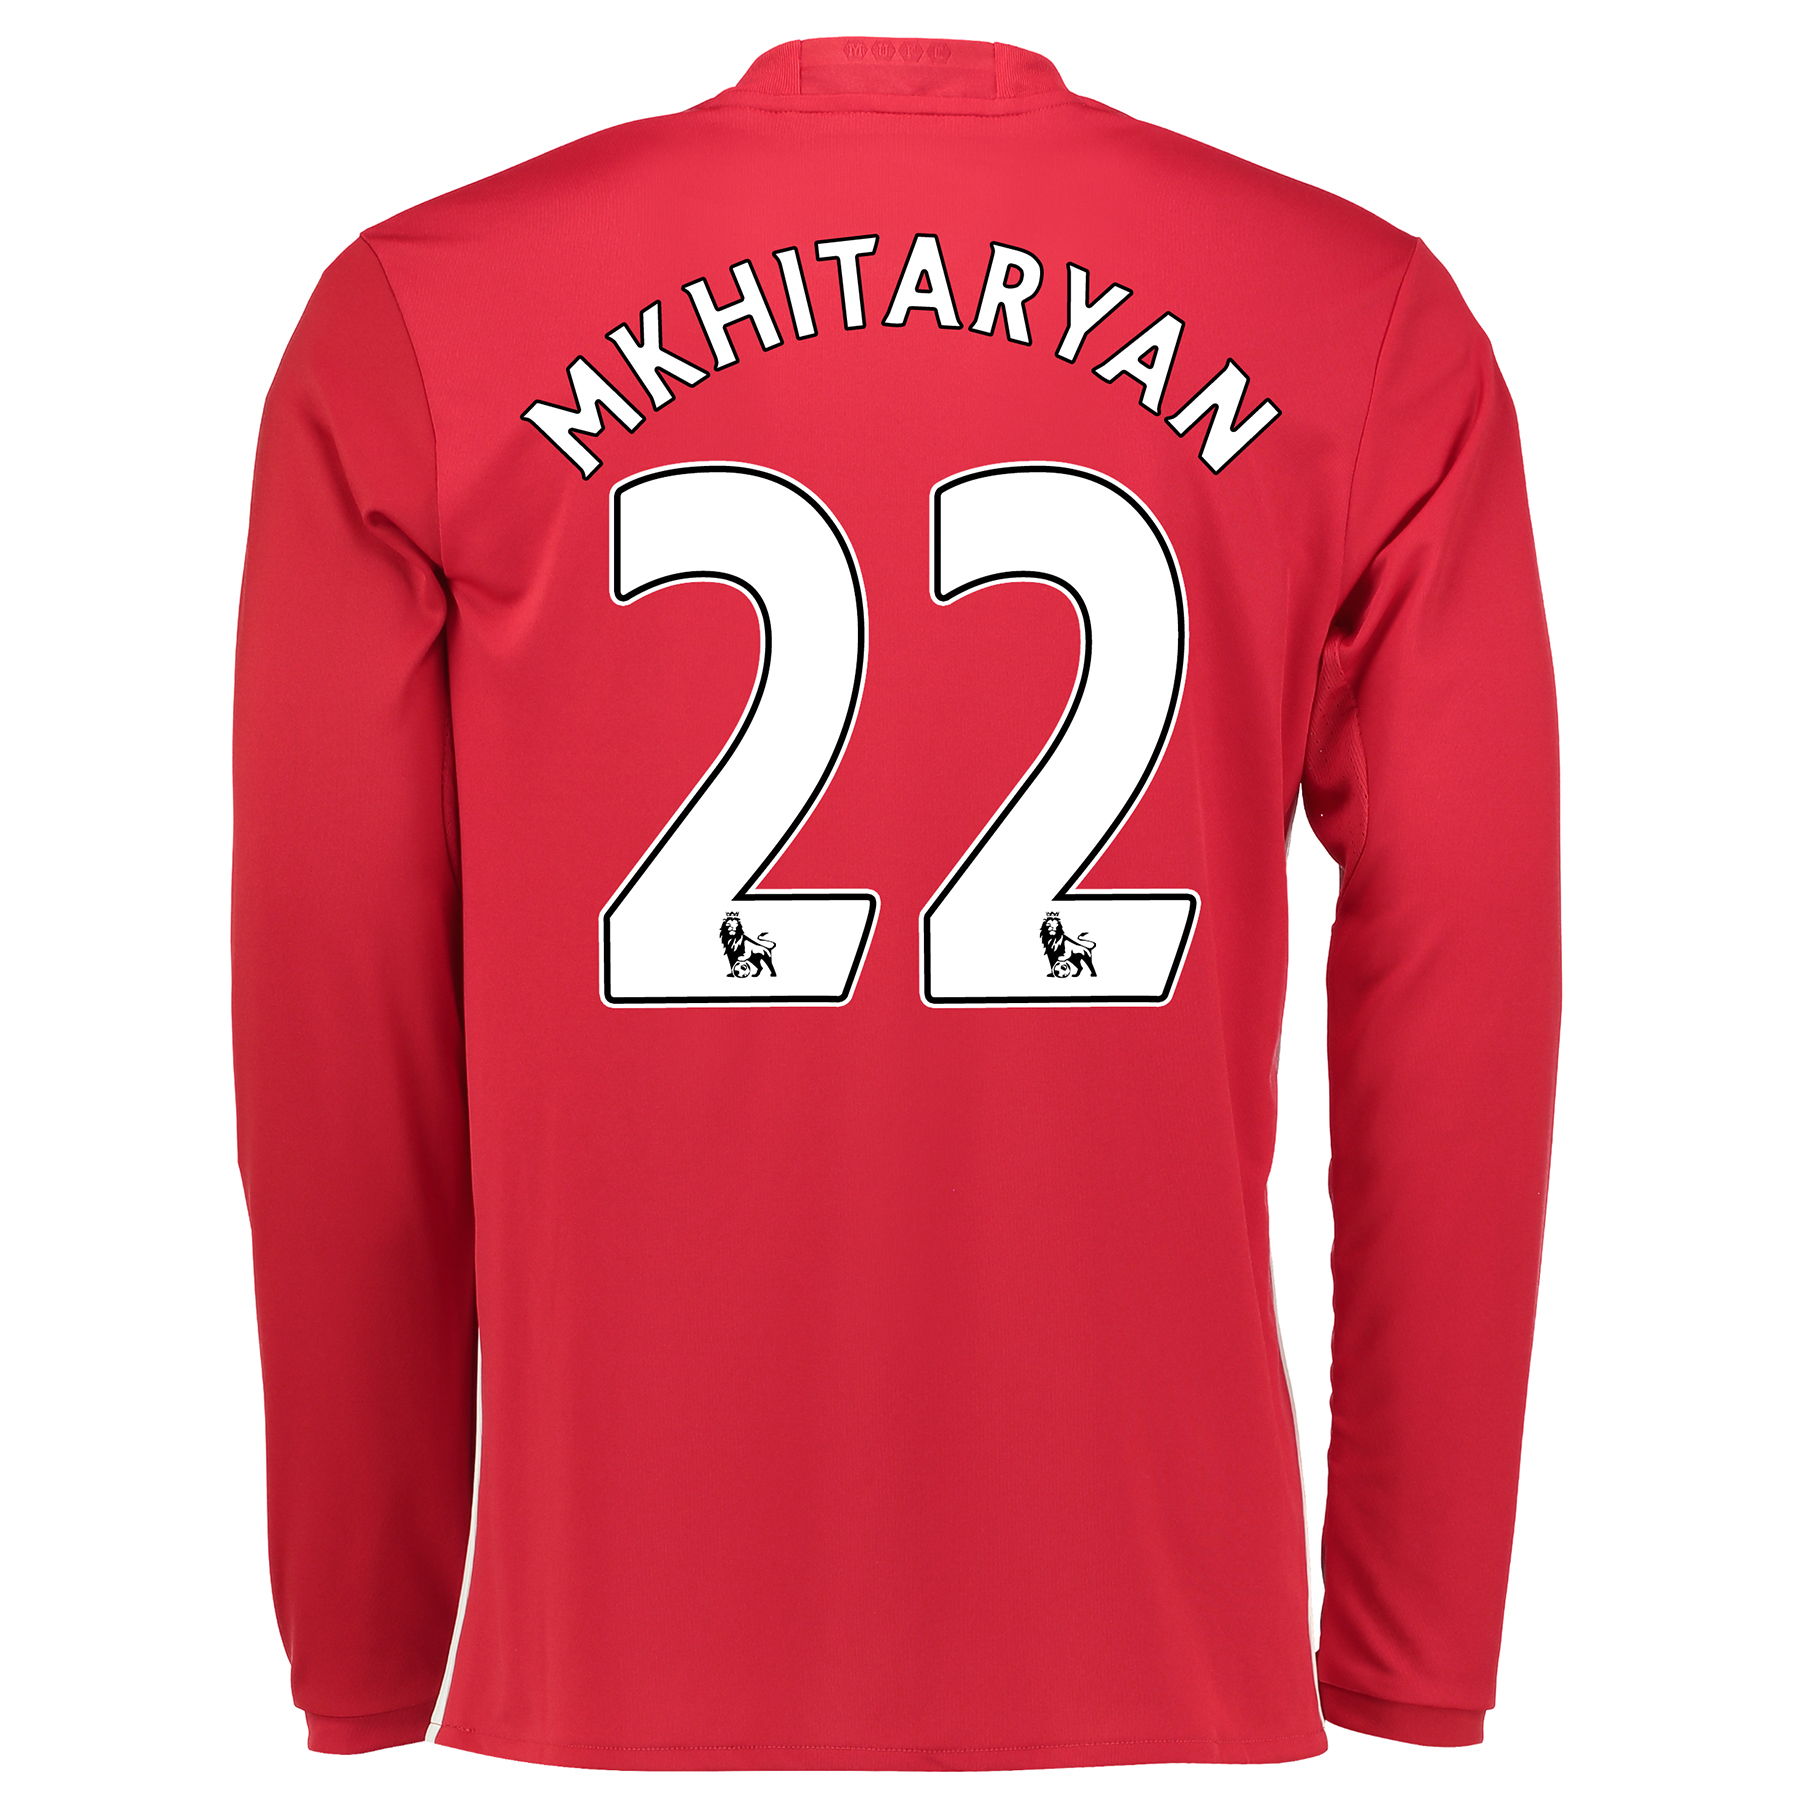 Manchester United Home Shirt 2016-17 - Long Sleeve with Mkhitaryan 22